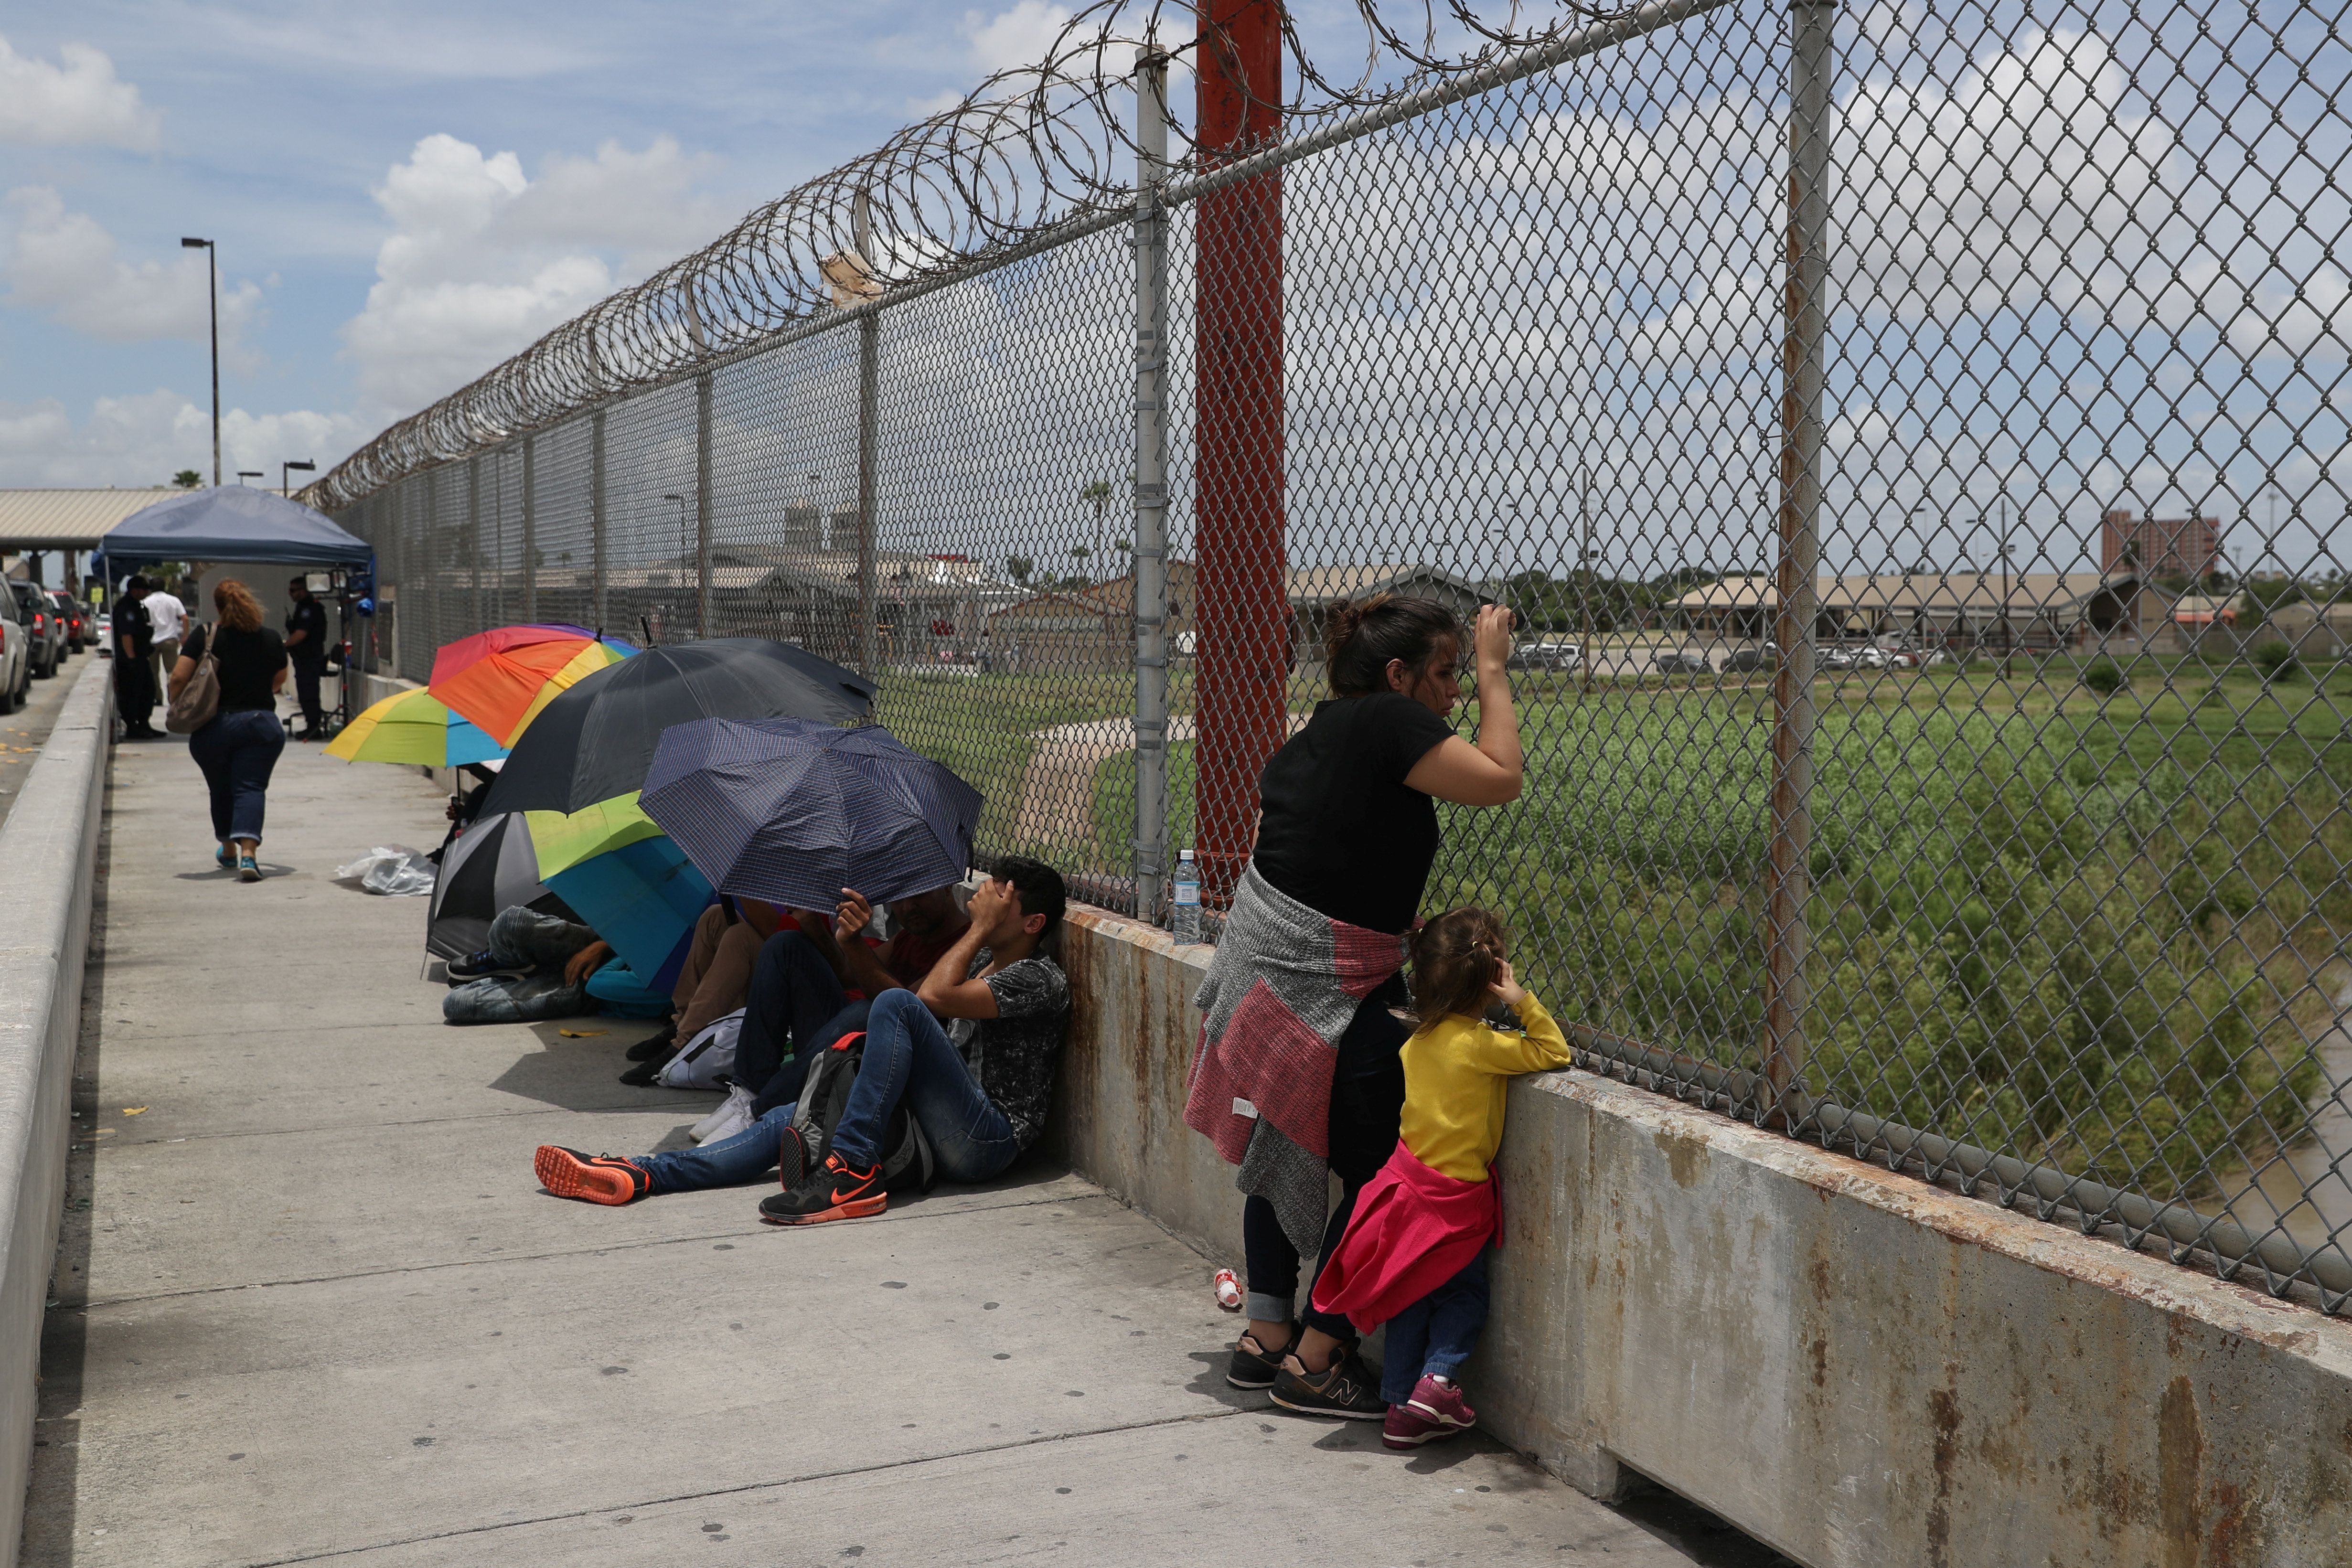 A Honduran mother and her 3-year-old daughter wait with fellow asylum seekers on the Mexican side of the Brownsville-Matamoros International Bridge after being denied entry by U.S. Customs and Border Protection officers near Brownsville, Texas, U.S., June 24, 2018.  REUTERS/Loren Elliott